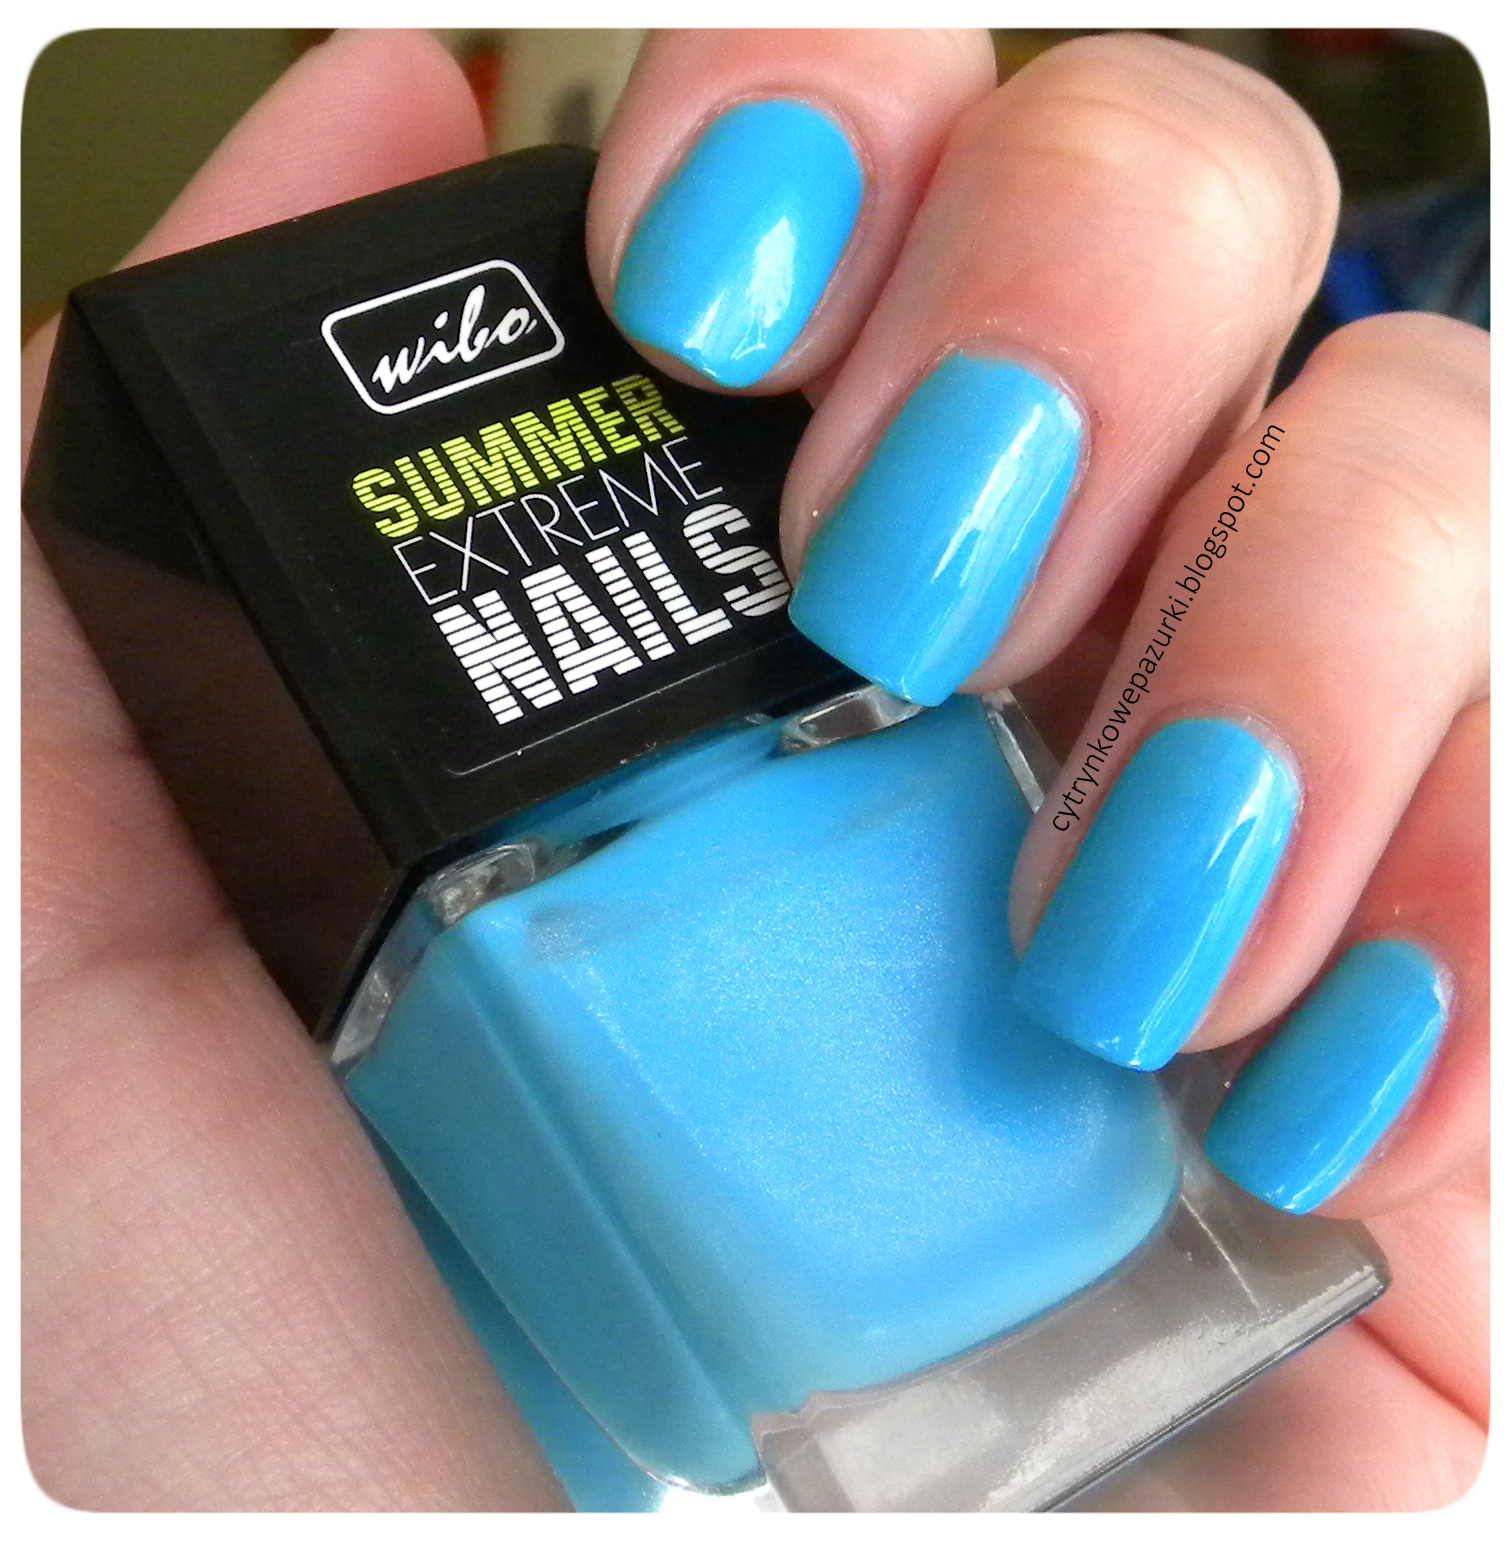 Wibo Summer Extreme Nails 532